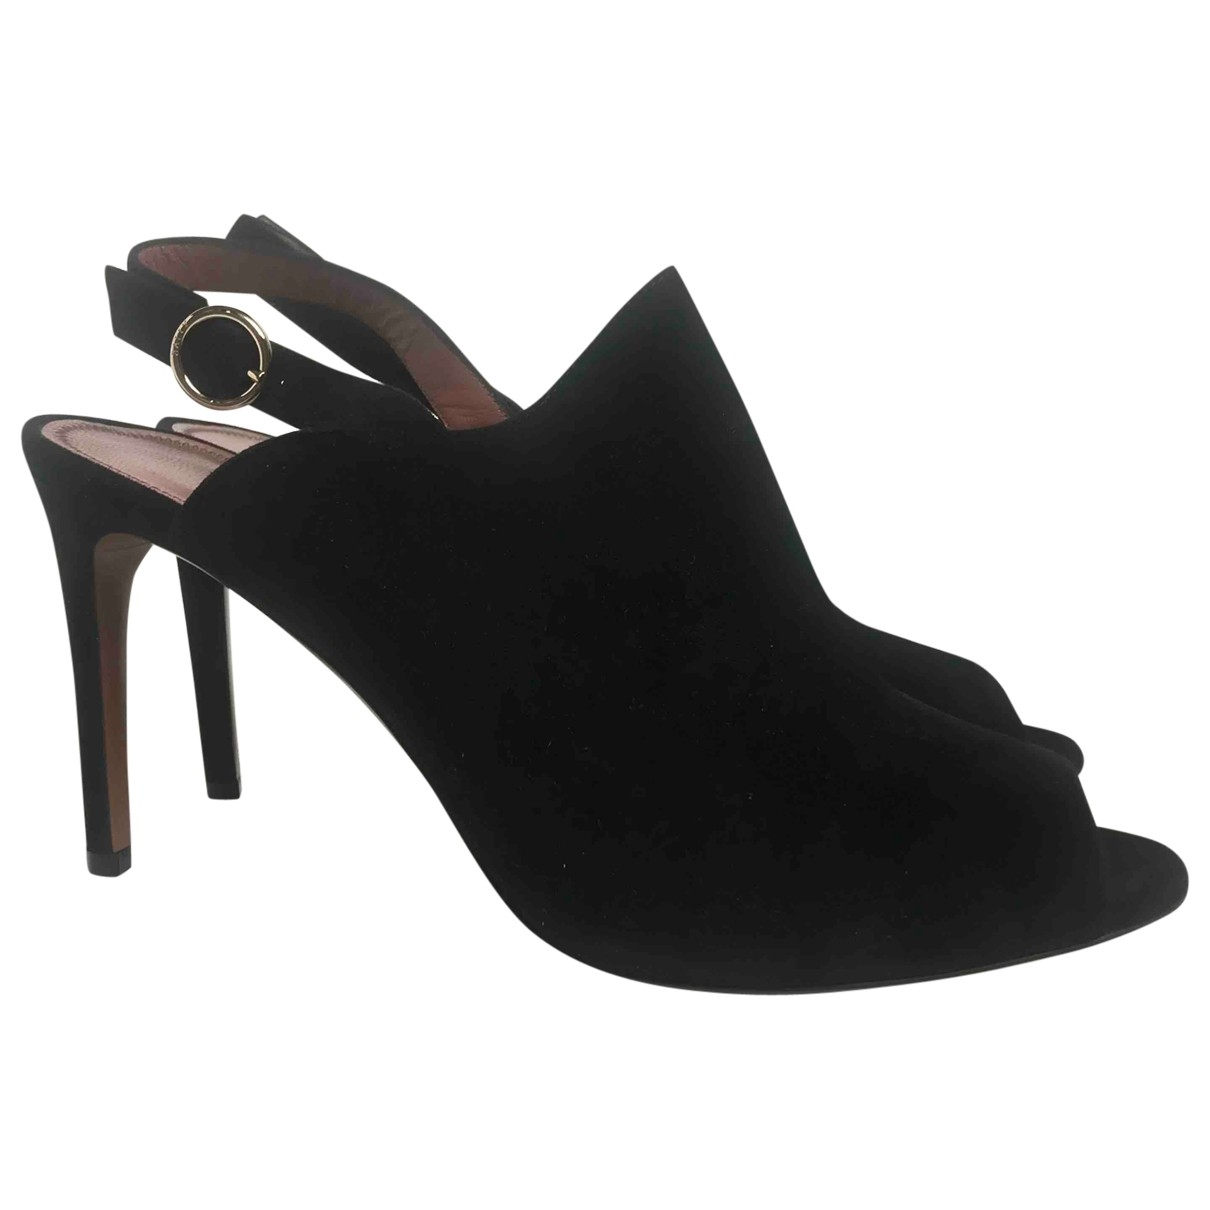 Bally \N Black Suede Sandals for Women 40 EU